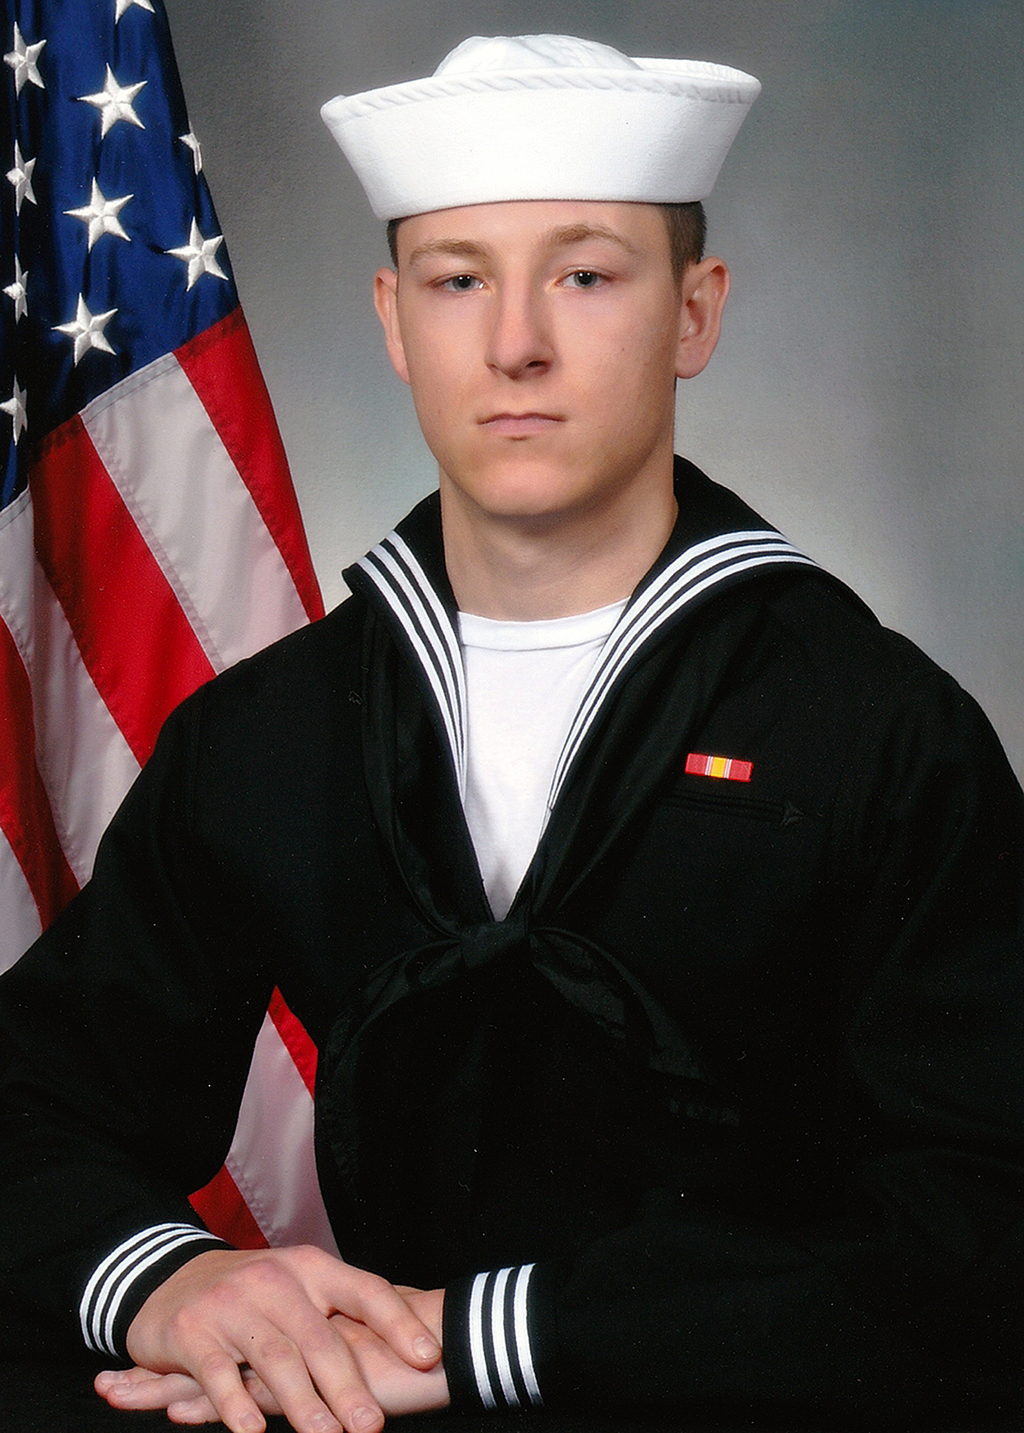 In this undated photo released by the U.S. Navy shows Electronics Technician 3rd Class Kenneth Aaron Smith from Cherry Hill, N.J. Smith, 22, was stati...